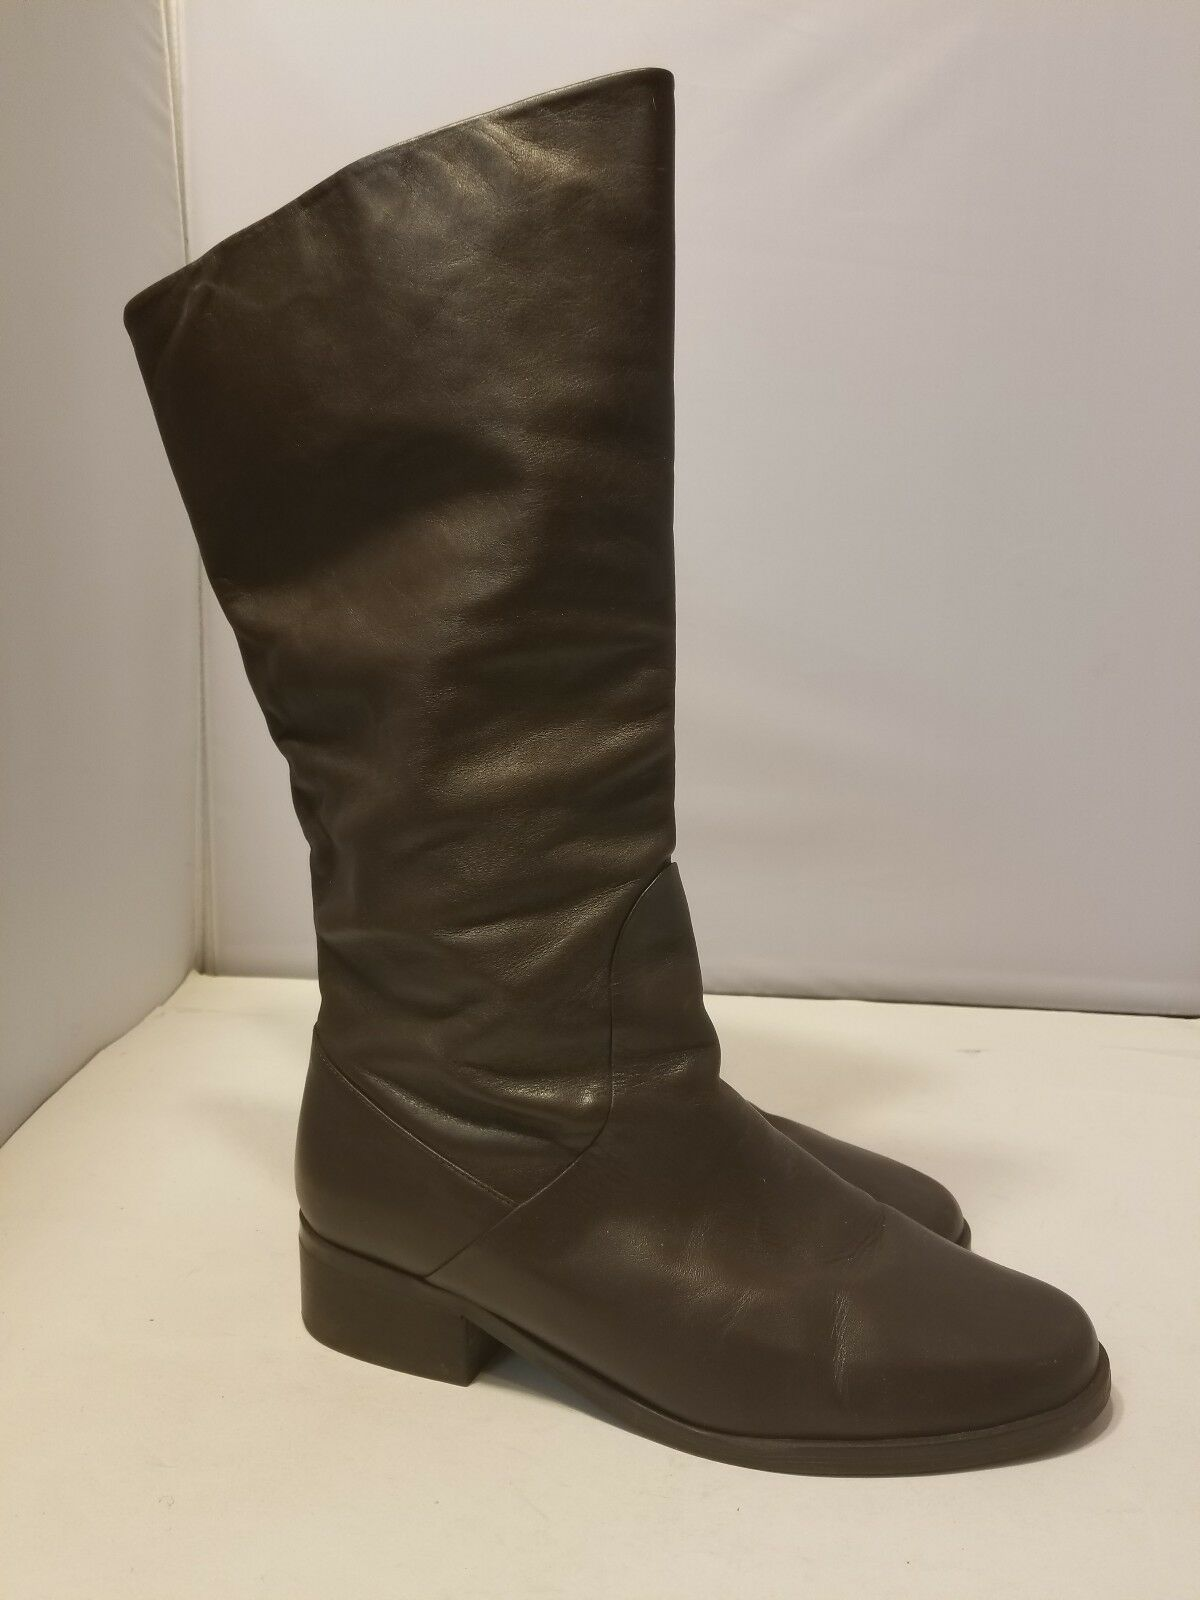 MARKON SHANDY BROWN LEATHER KNEE HIGH FASHION RIDING BOOTS SIZE 10 W  18